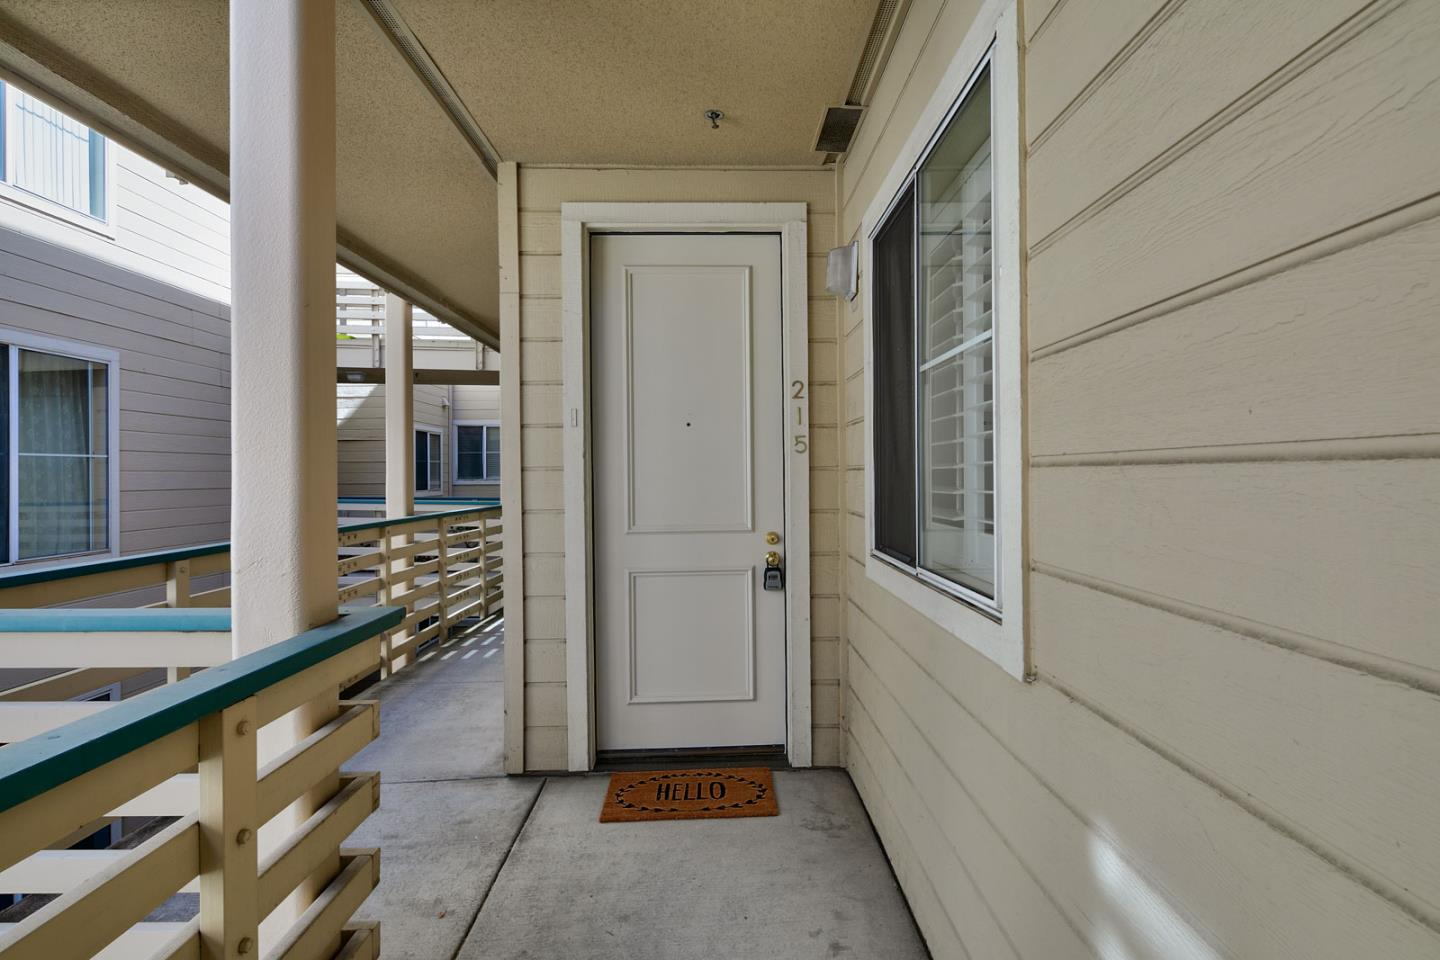 Fabulous Sunnyvale Condo located in the desirable Terraces Community!  This 2nd floor home features 2 bedrooms, 2 full bathrooms, and approximately 1,082 sq. ft. of living space.  Open concept floor plan with high ceilings and private balcony off the living room. Primary bedroom offers a large walk-in closet and attached ensuite has a sunken tub and double vanity.  Spacious in-unit laundry room and reserved parking space in a secure underground garage, with storage closet.  The complex offers a pool, spa, clubhouse, and ample guest parking.  This condo is in the heart of Silicon Valley with convenient access to El Camino Real, HWY 280, and Lawrence Expressway.  Great Sunnyvale schools: Braly Elementary, Marian A. Peterson Middle, and Adrian Wilcox High.  Minutes to Sunnyvale Community Center,  Apple Campus, Downtown, CalTrain, and more!